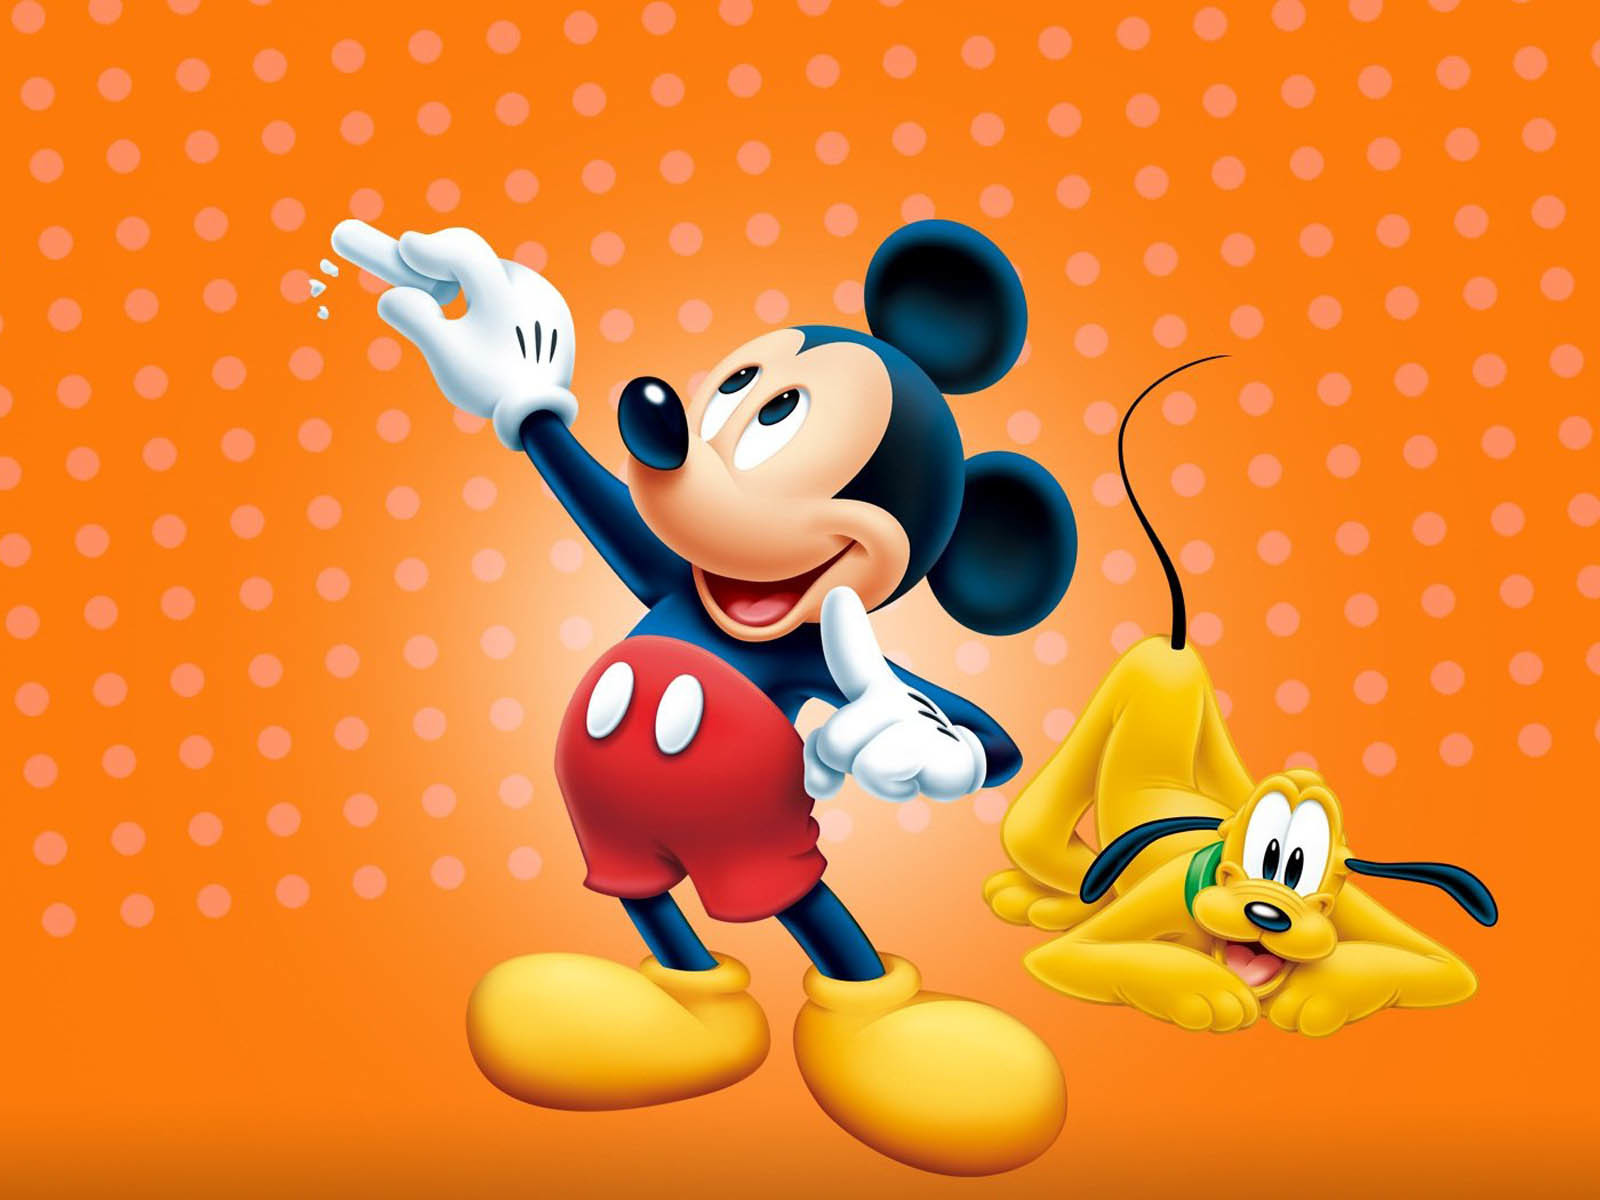 Mickey Mouse Wallpaper, 100% Quality Mickey Mouse HD Backgrounds